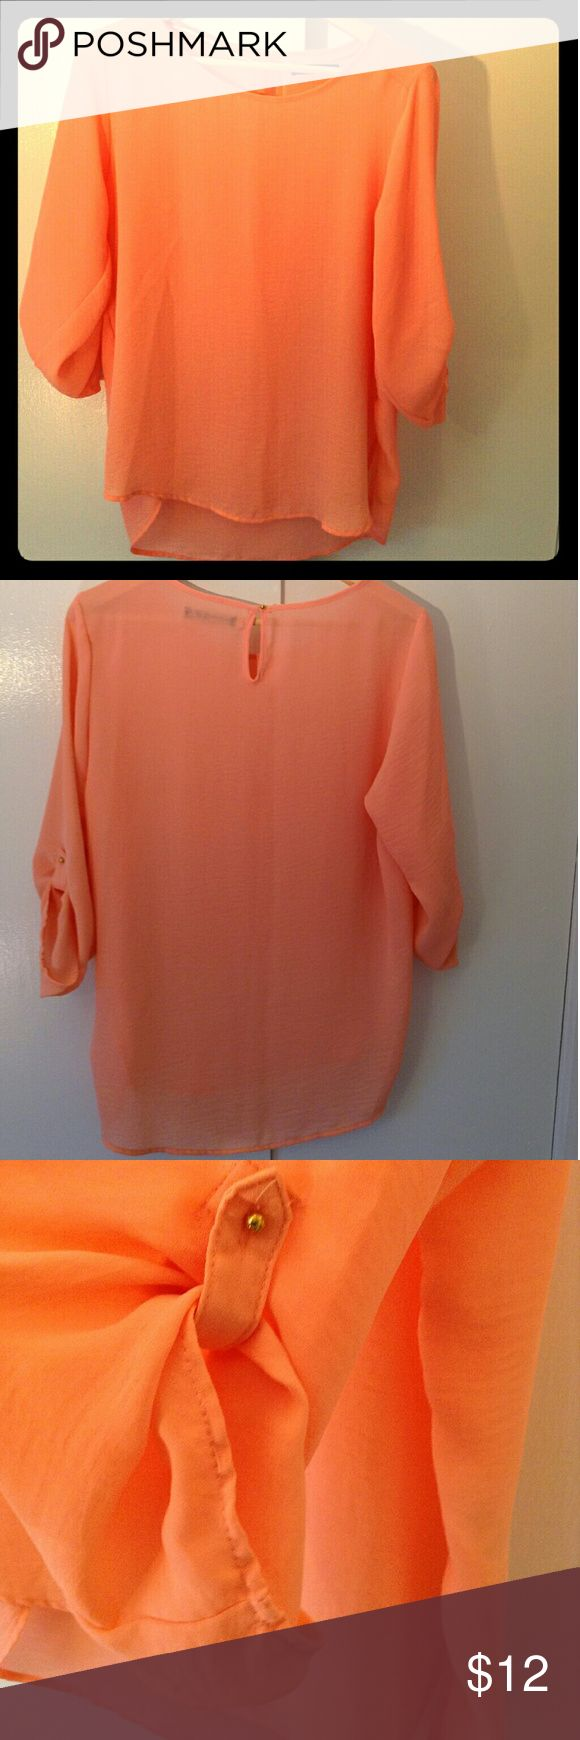 Blouse (new) Beautiful salmon flowing blouse, 100% polyester Primark  Tops Blouses